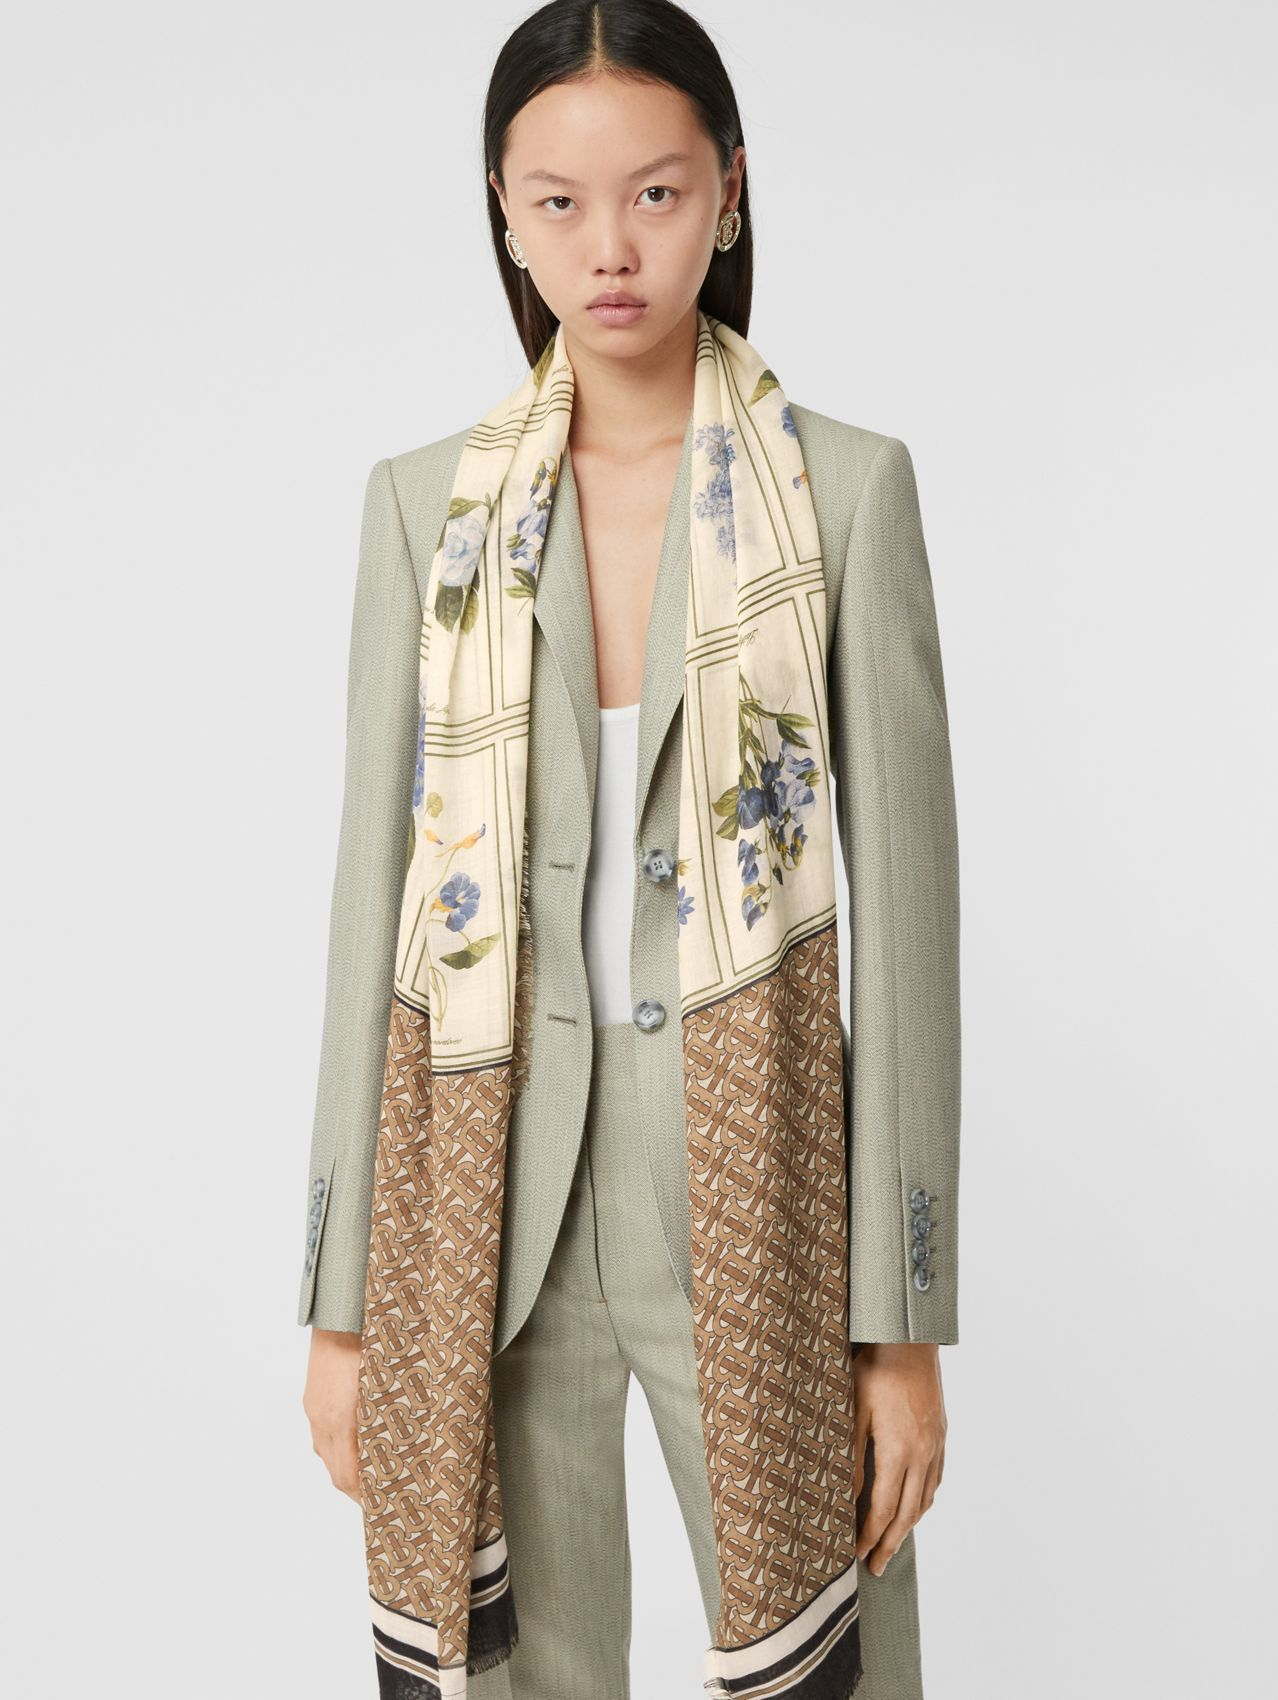 Botanical and Monogram Print Silk Wool Scarf (Archive Beige)